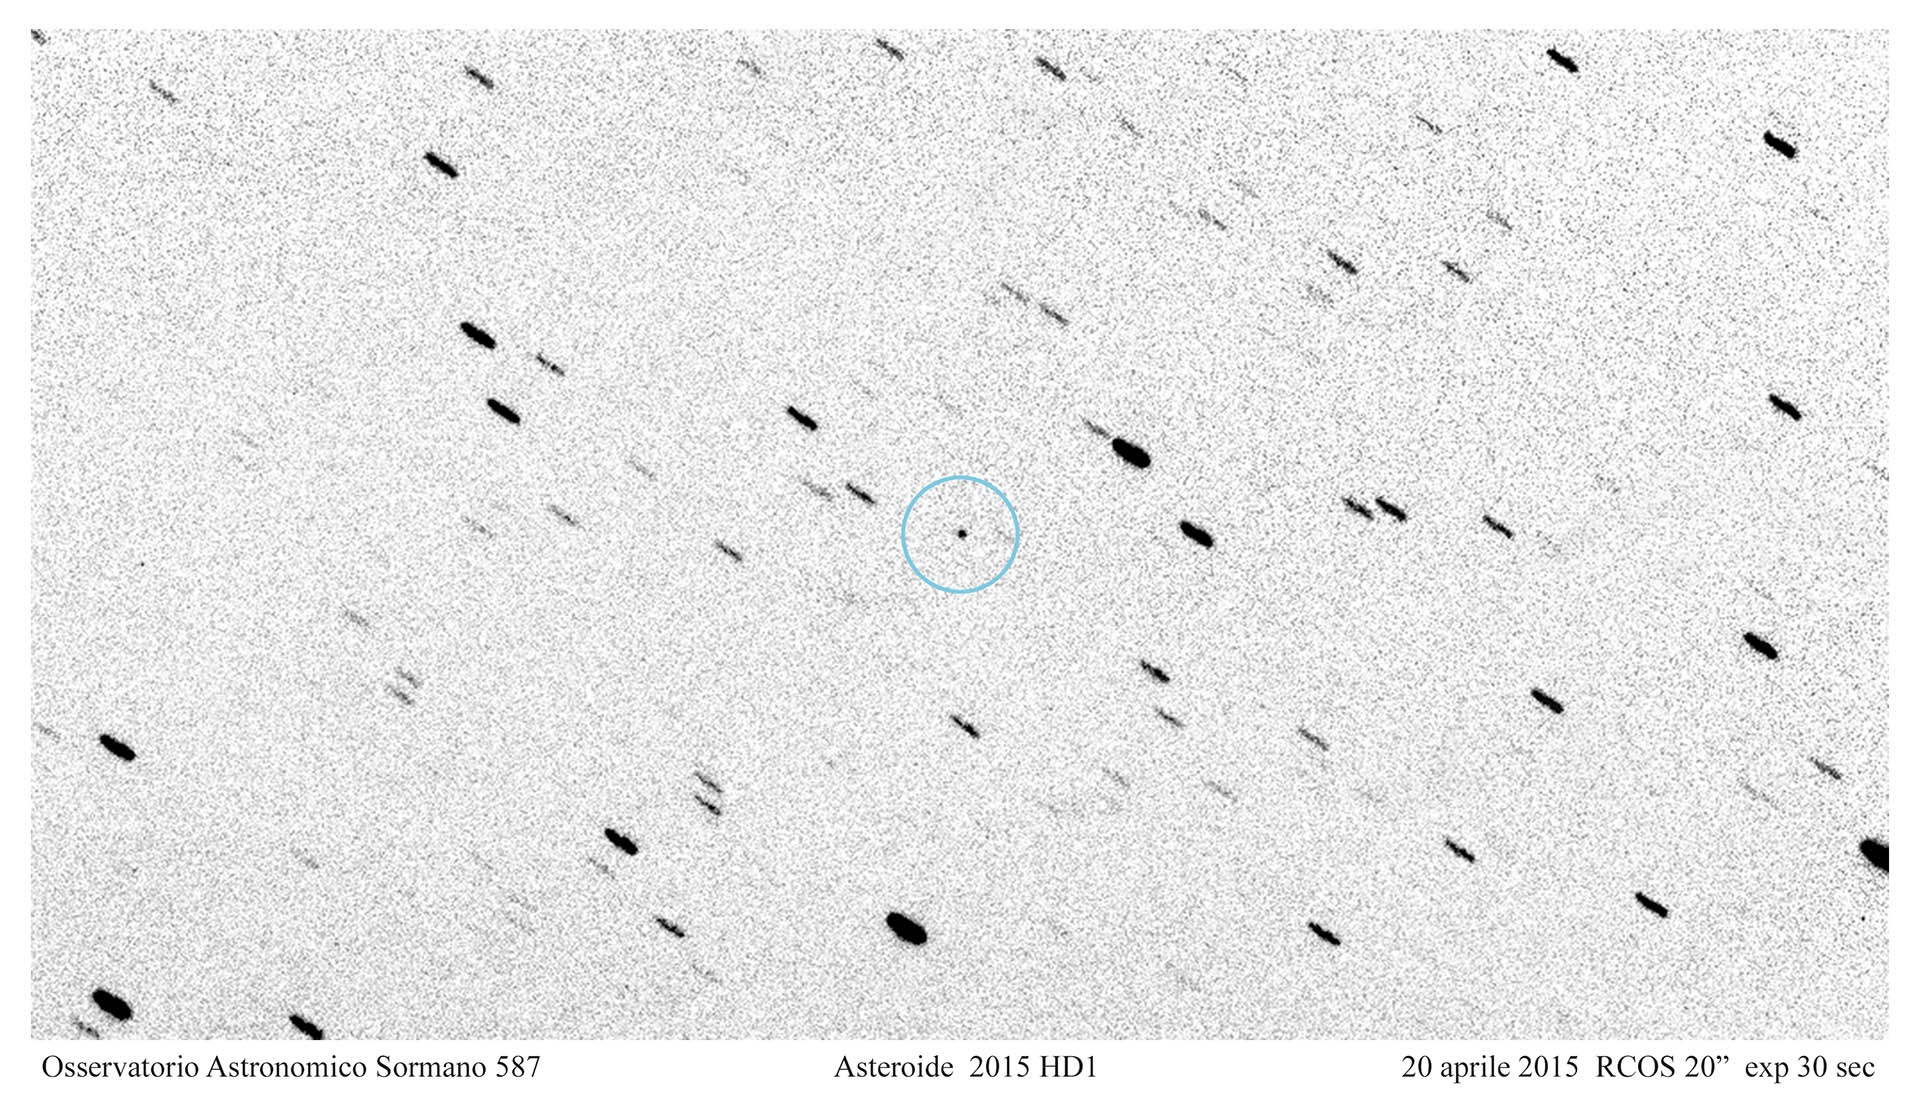 Asteroide 2015 HD1